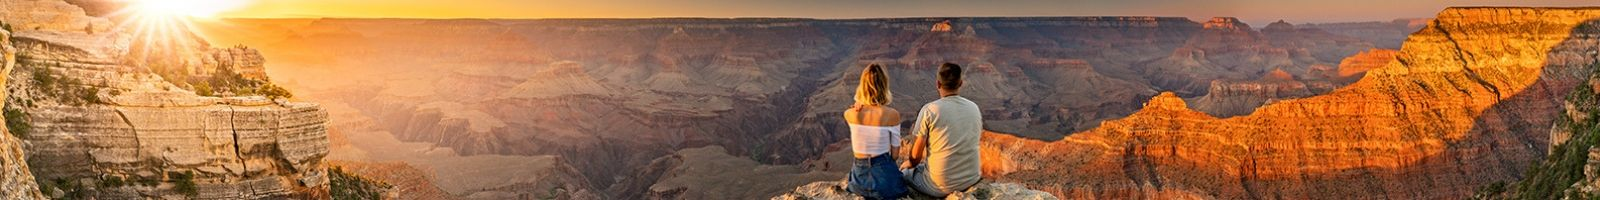 Allianz - couple-grand-canyon-2